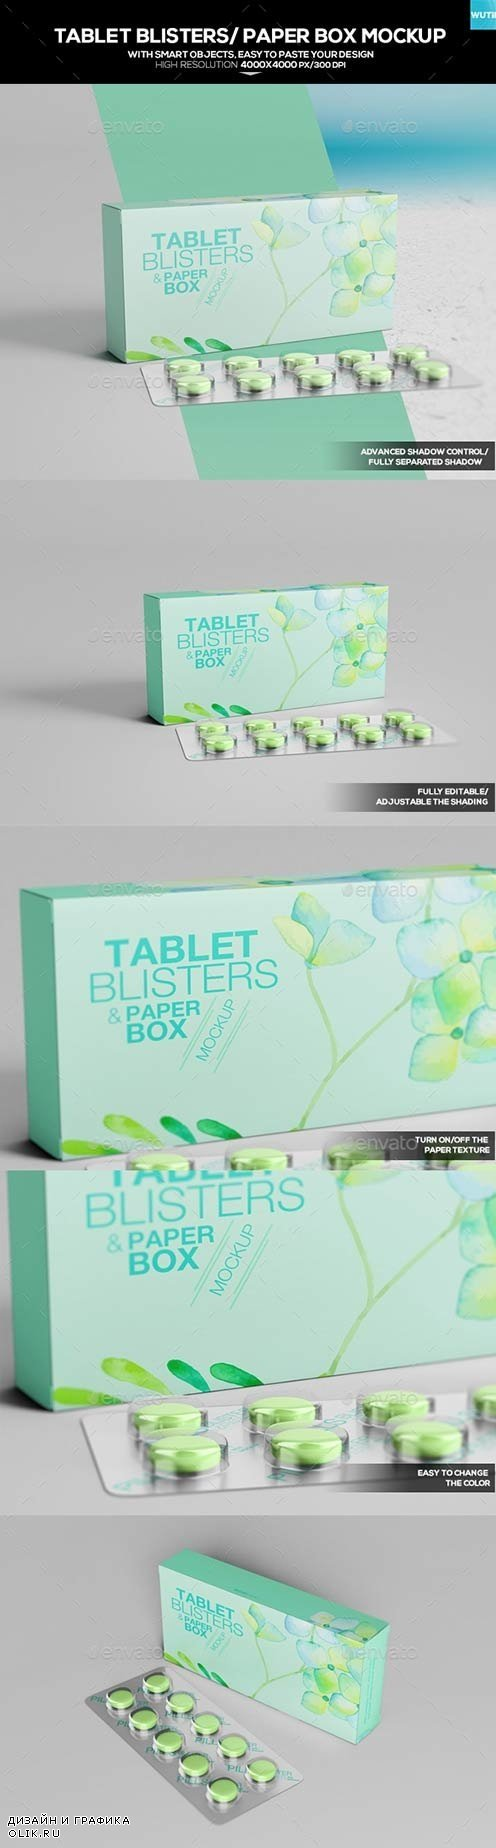 Tablet Blisters/ Paper Box Mockup 20140915